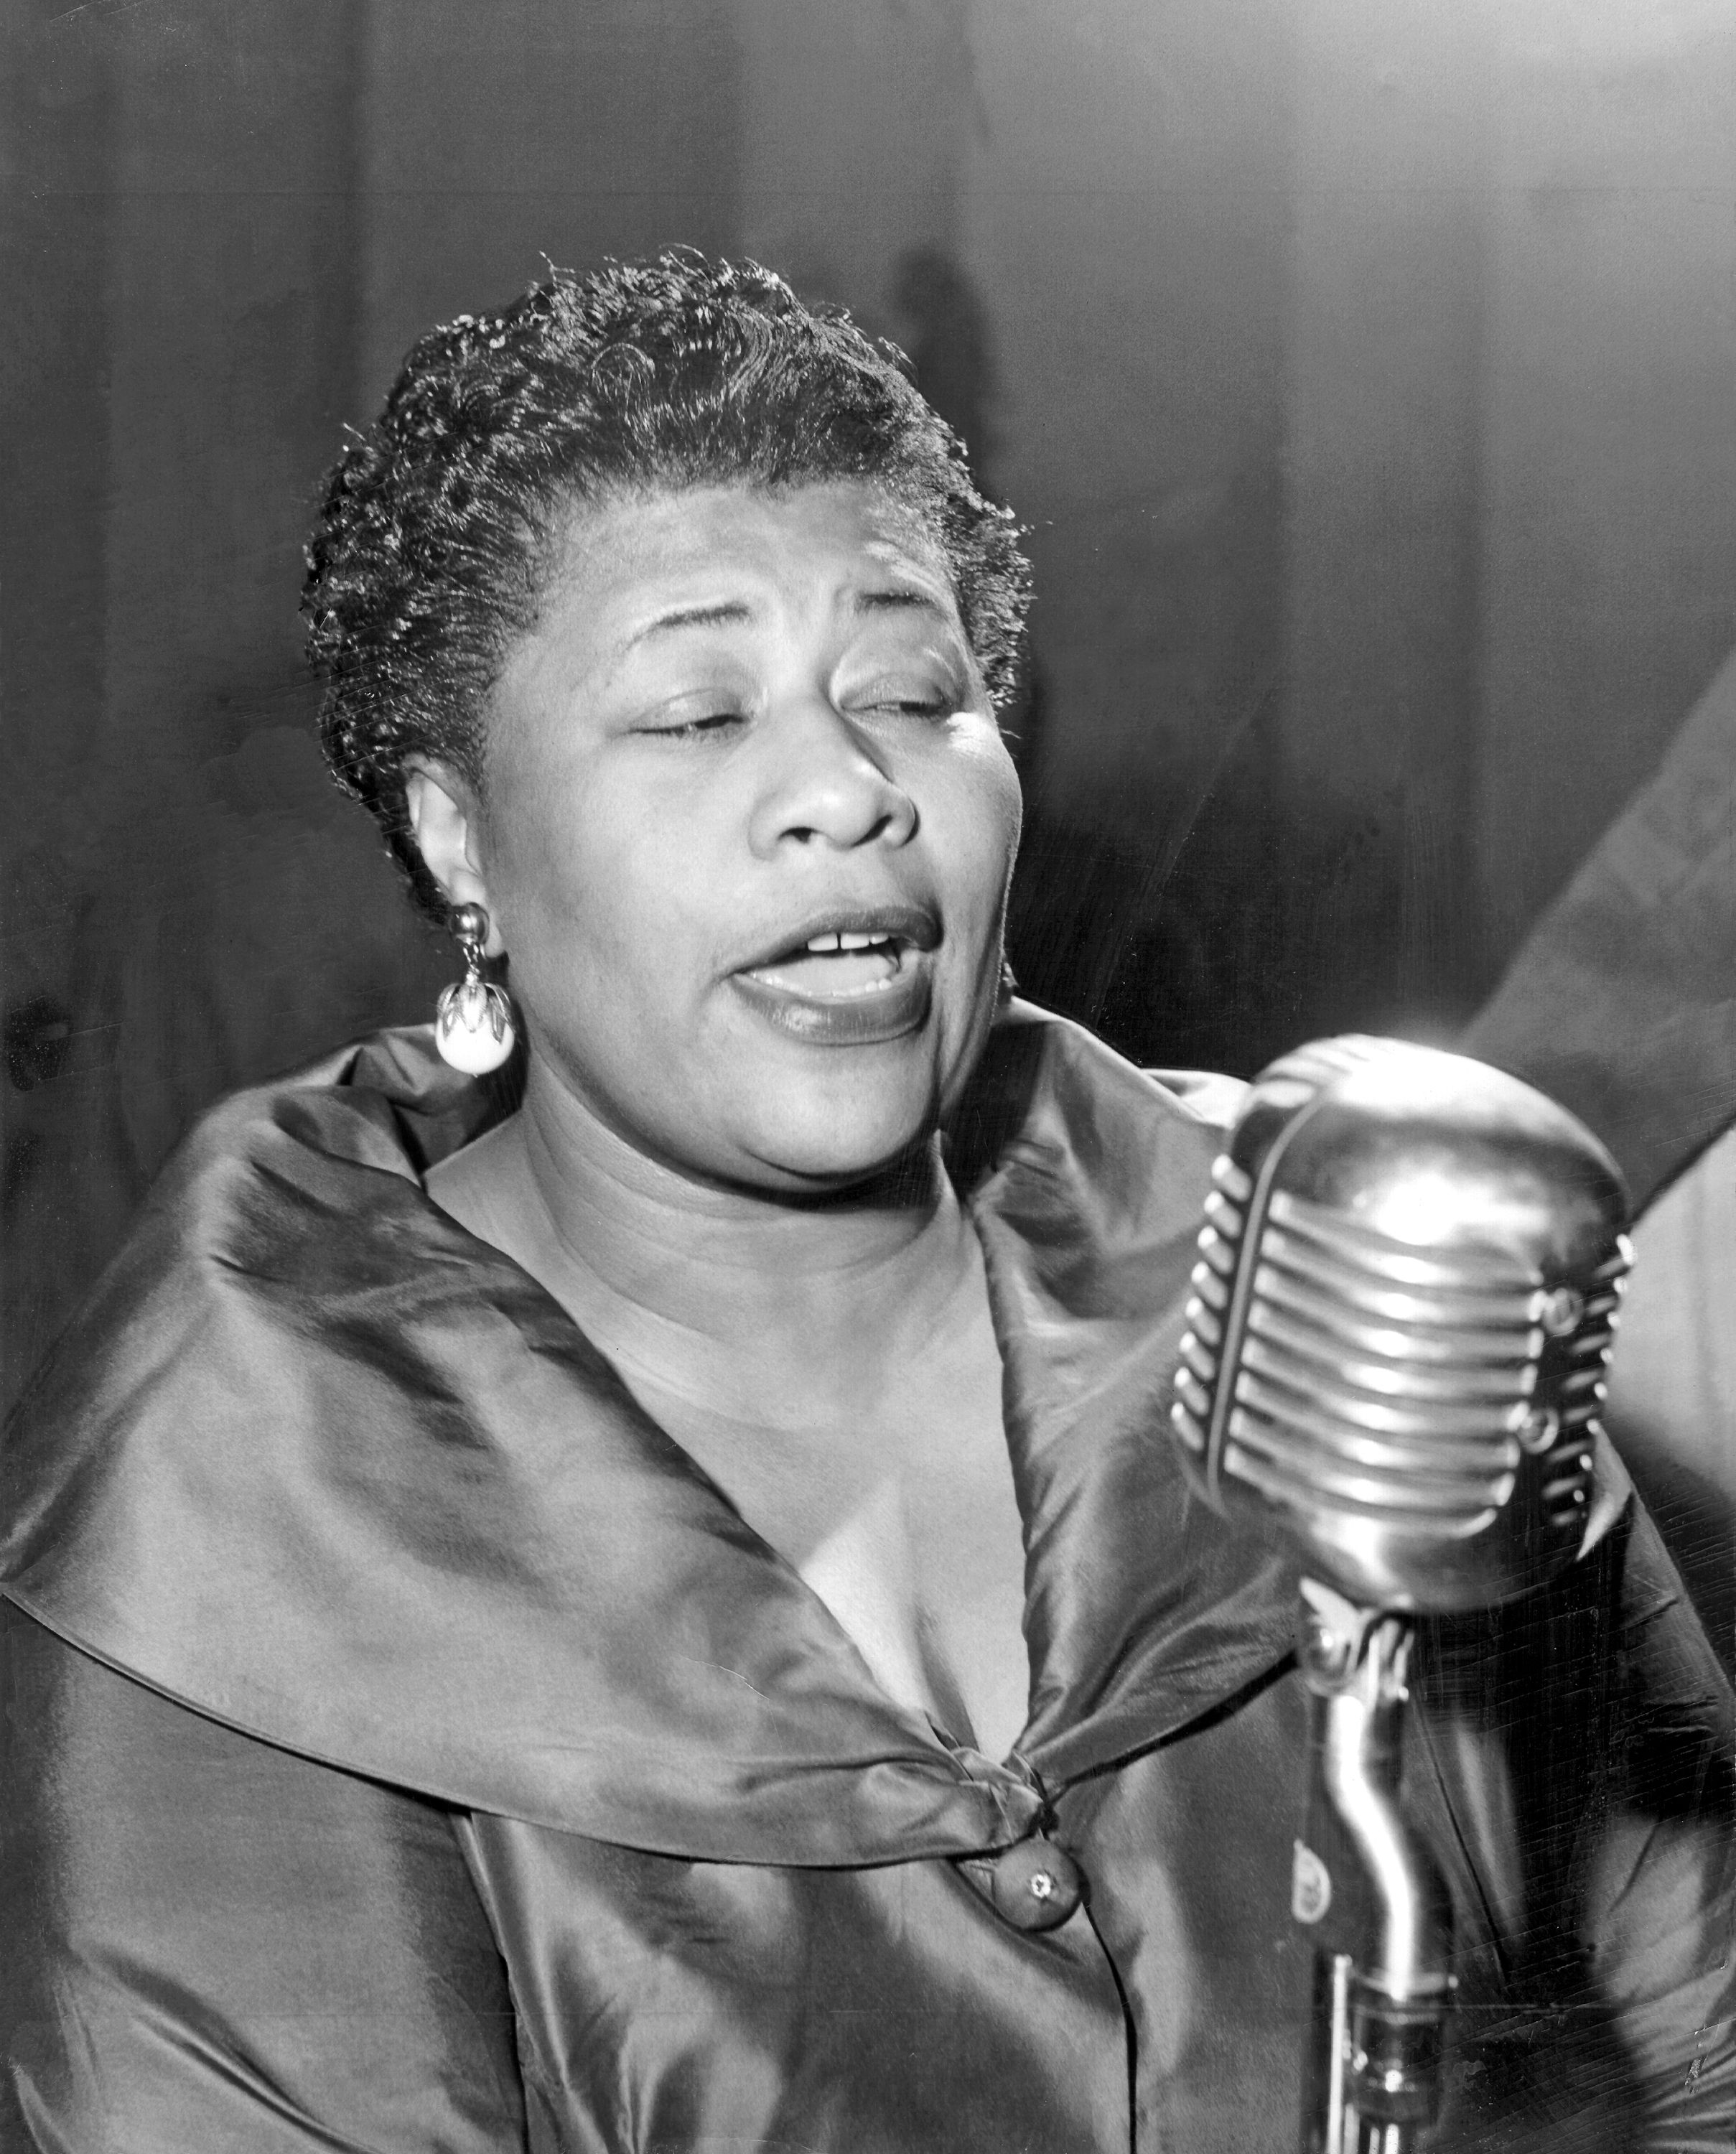 Which One of the Four Jazz Divas Are You? Ella